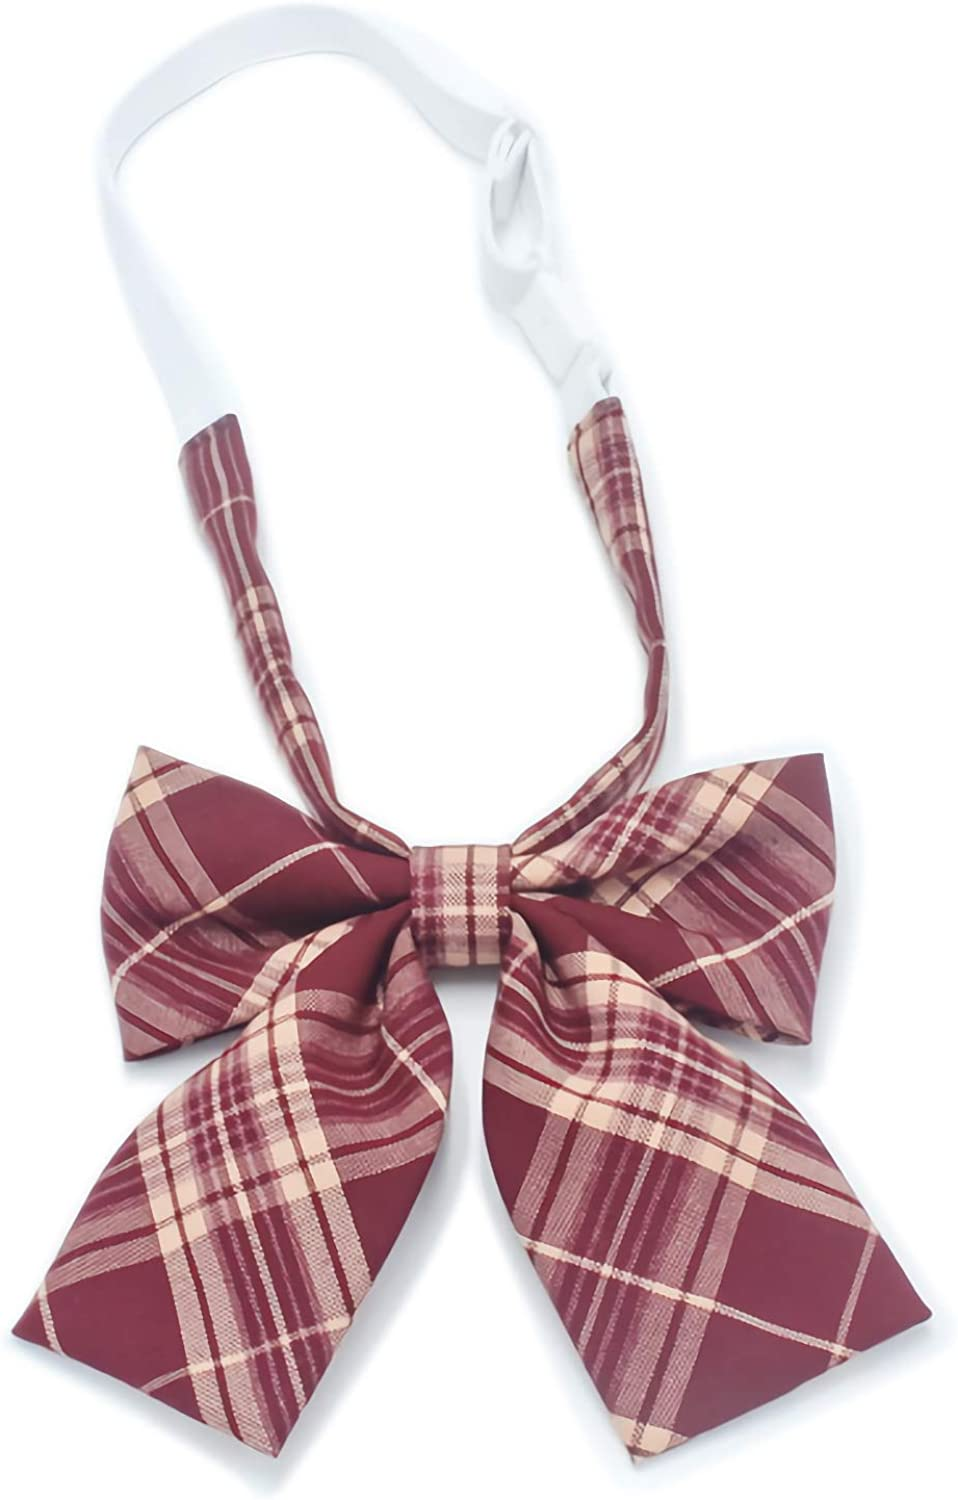 Length Adjustable Bow Tie Boys Soft Double Layered Bow Tie for Suit Uniform